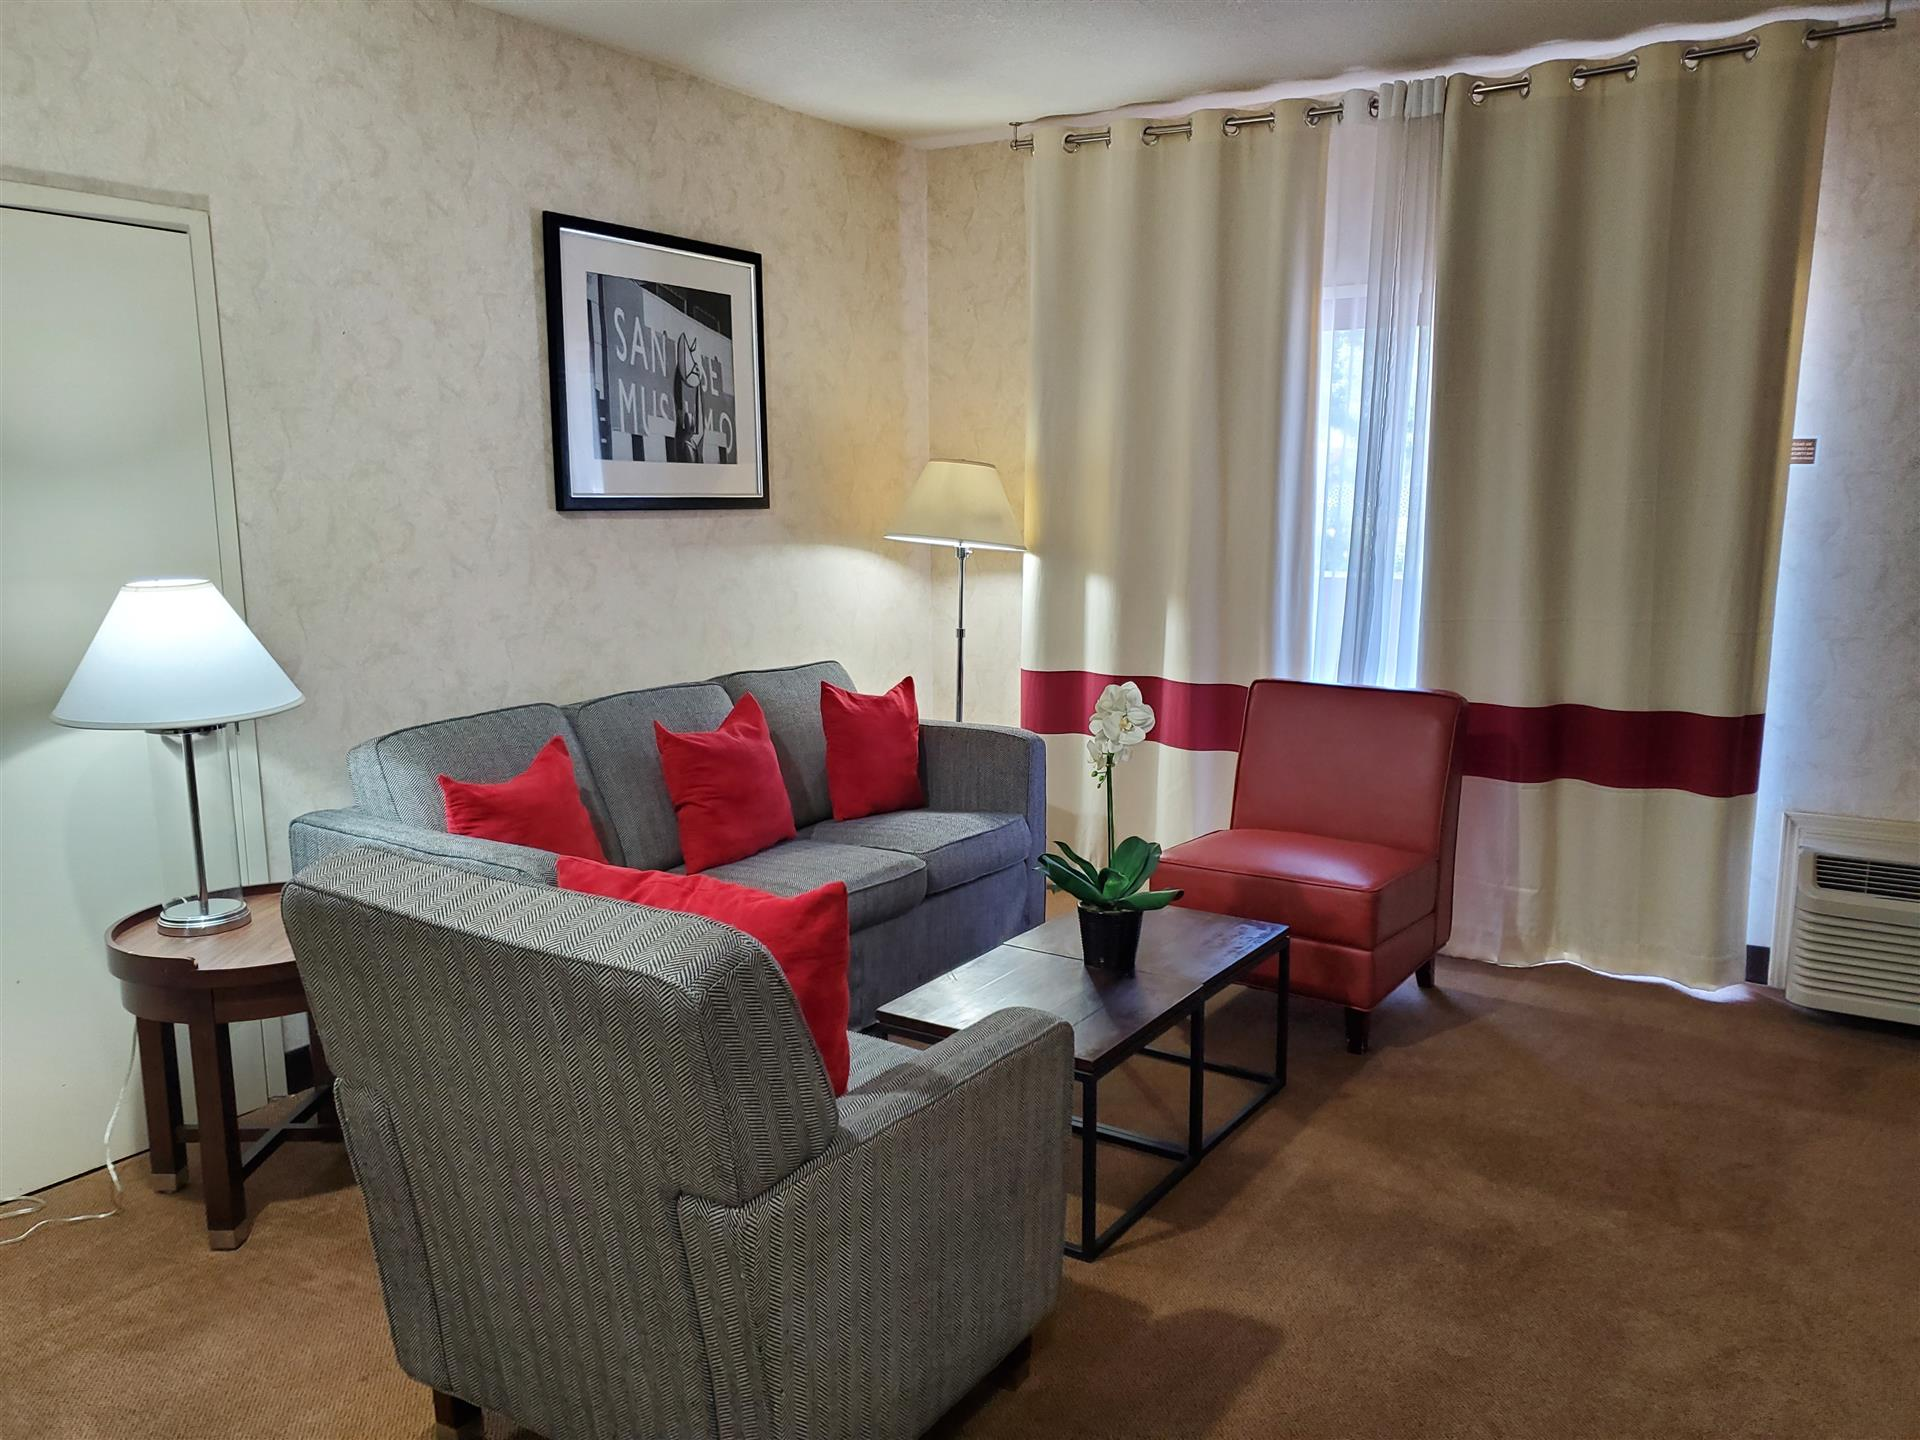 hotel room with couches, tables and chairs